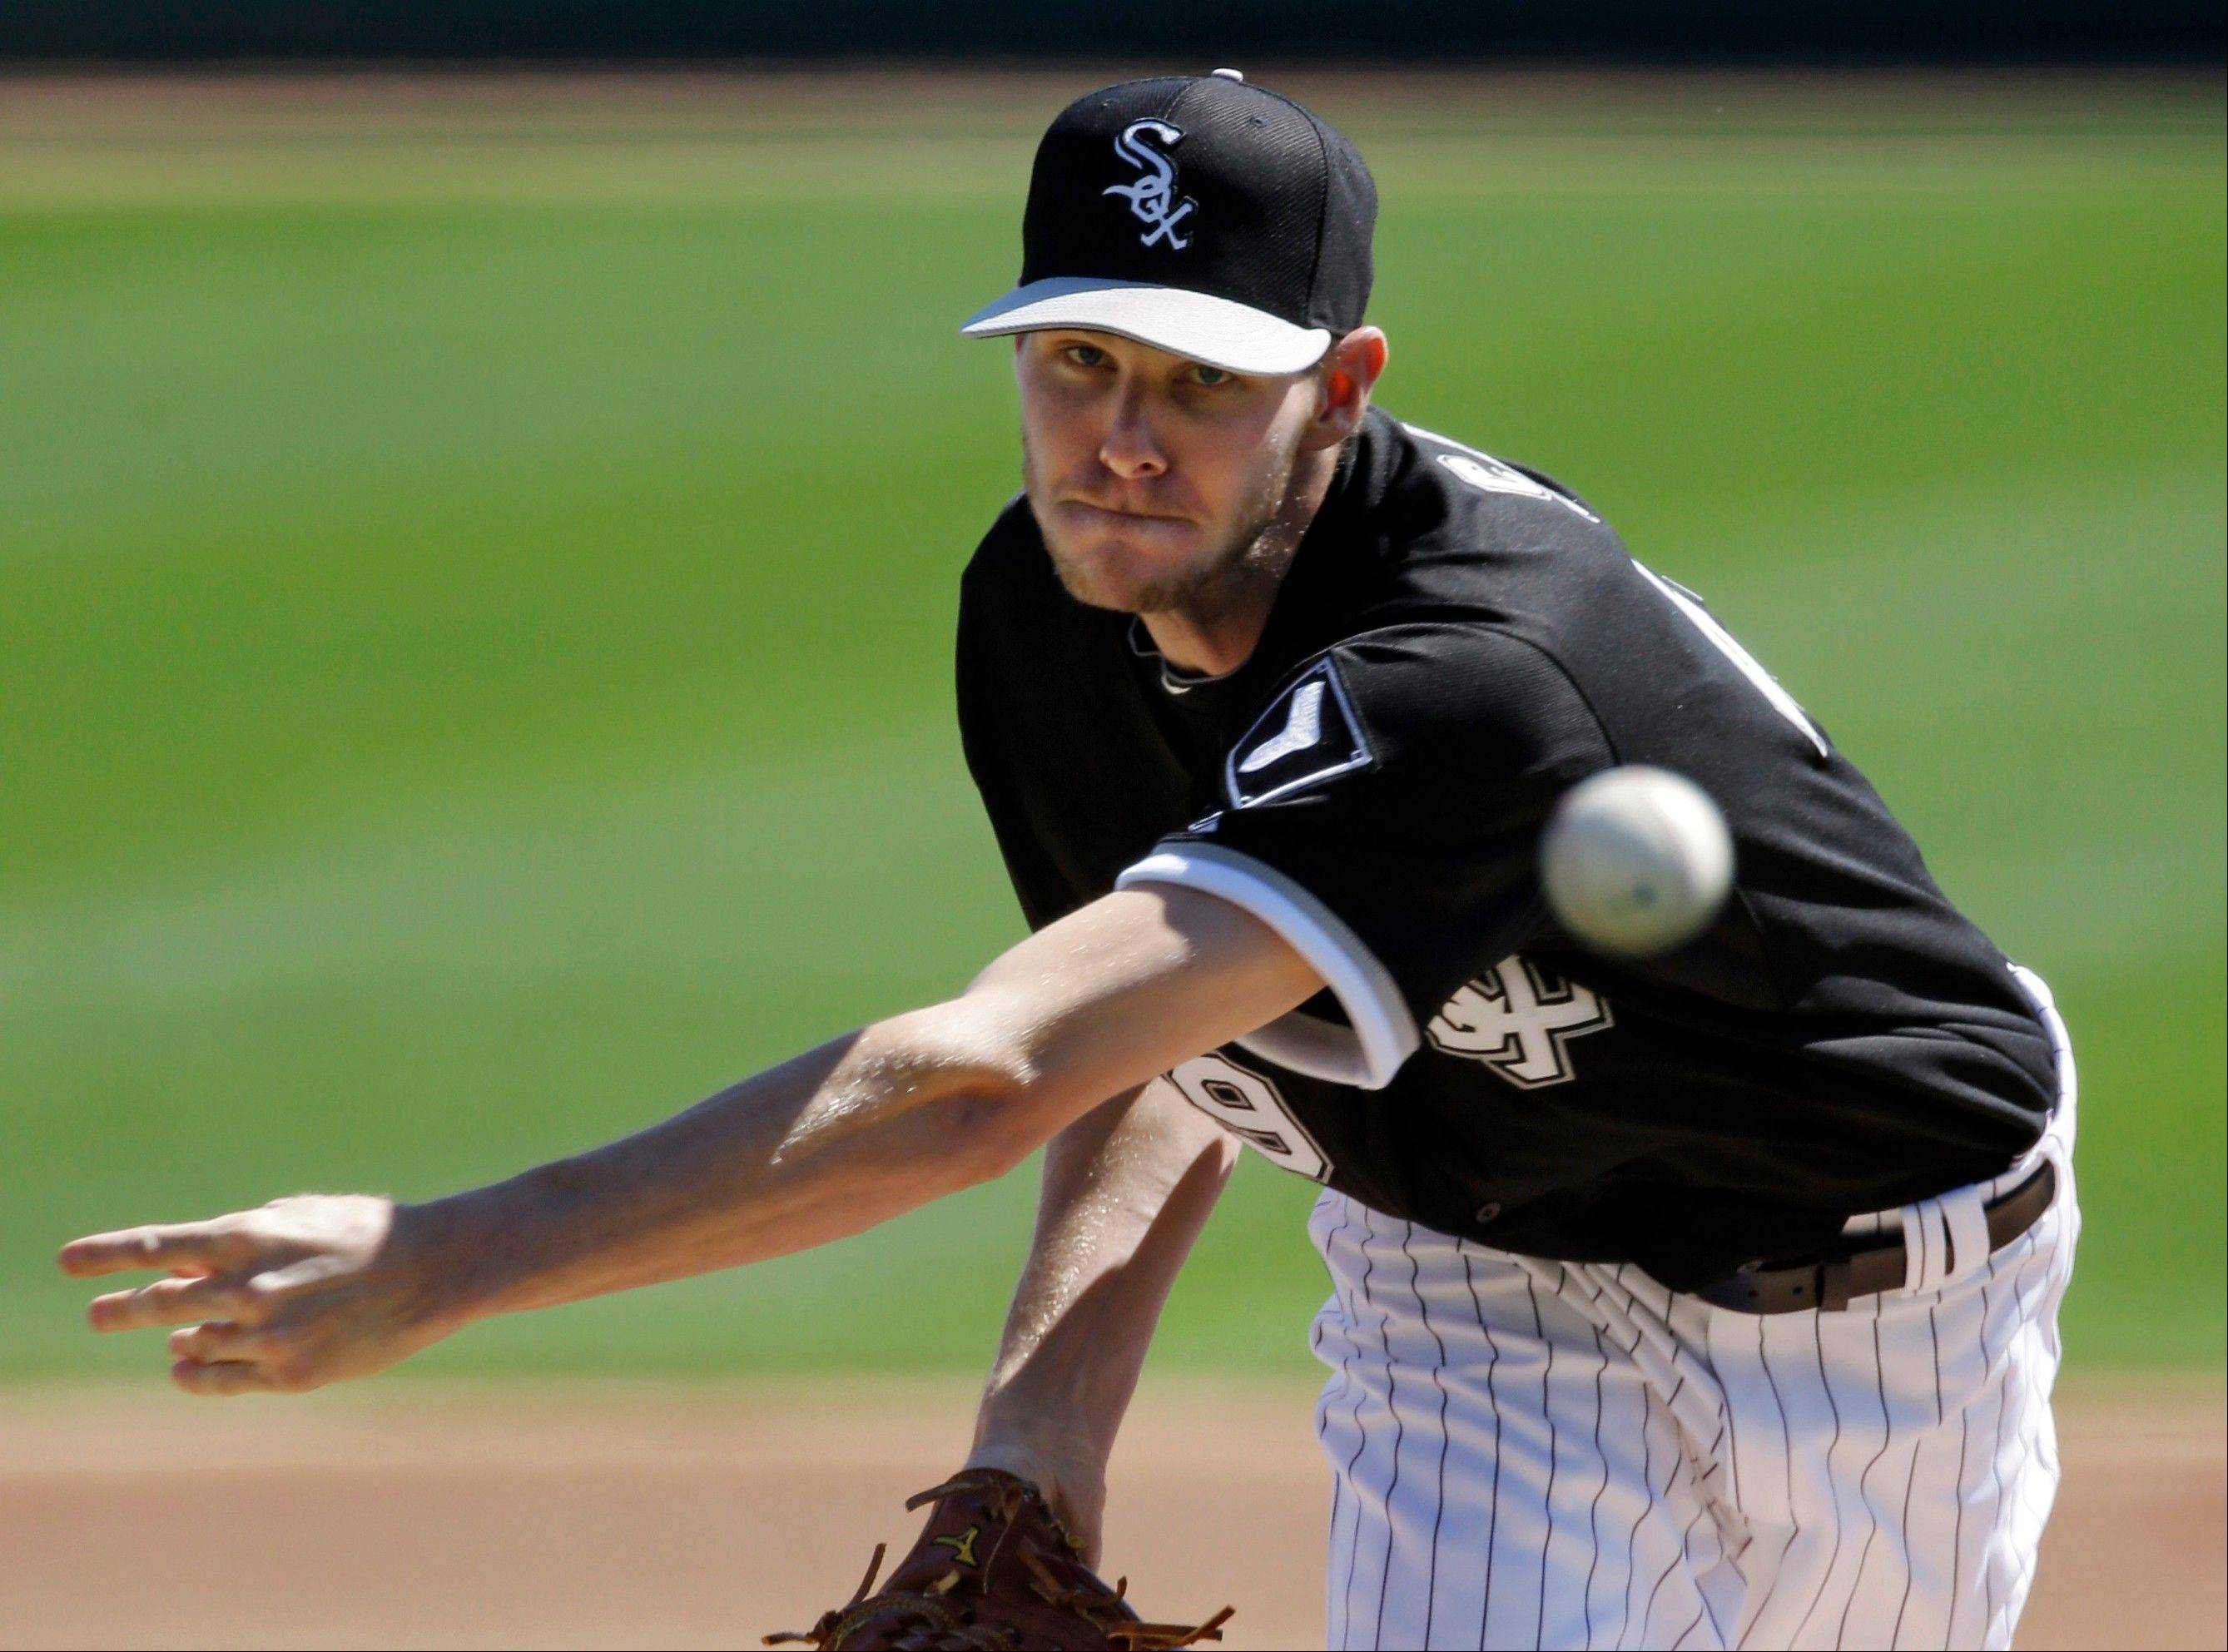 White Sox starting pitcher Chris Sale opens the season today on the mound against the Kansas City Royals at U.S. Cellular Field.